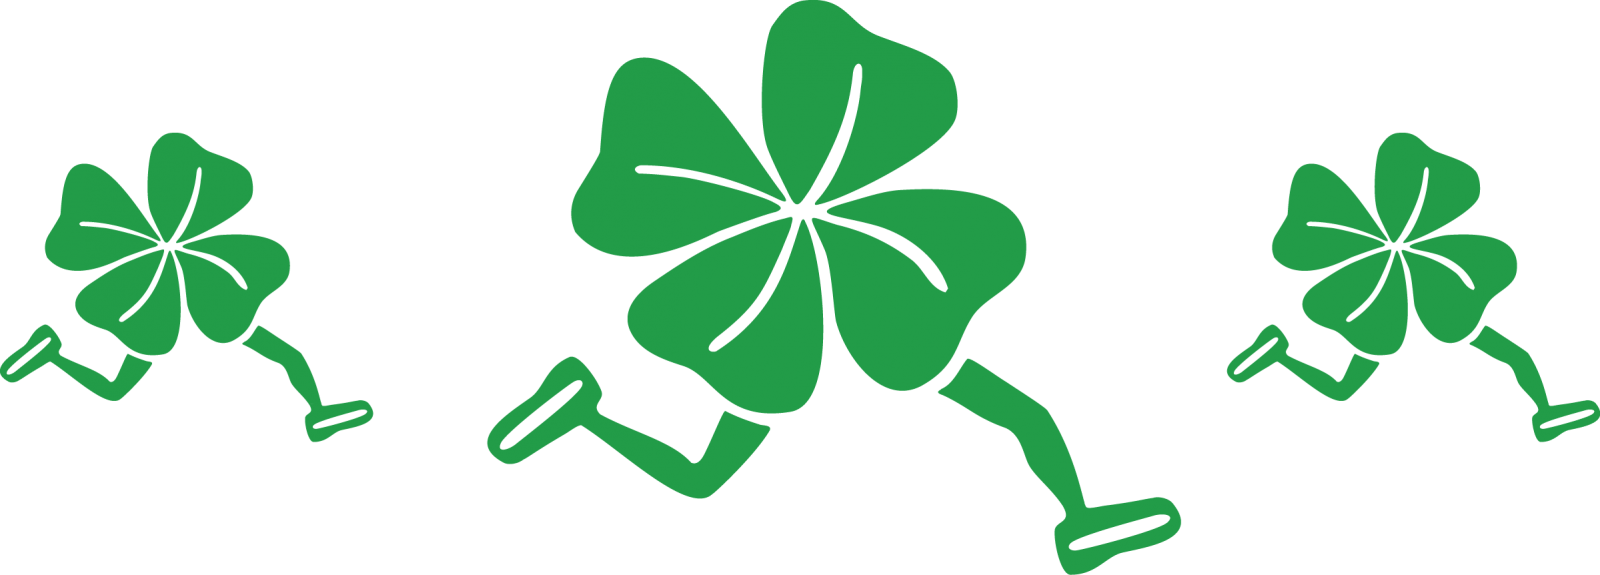 Join us for St. Paddy's 5k in Enumclaw